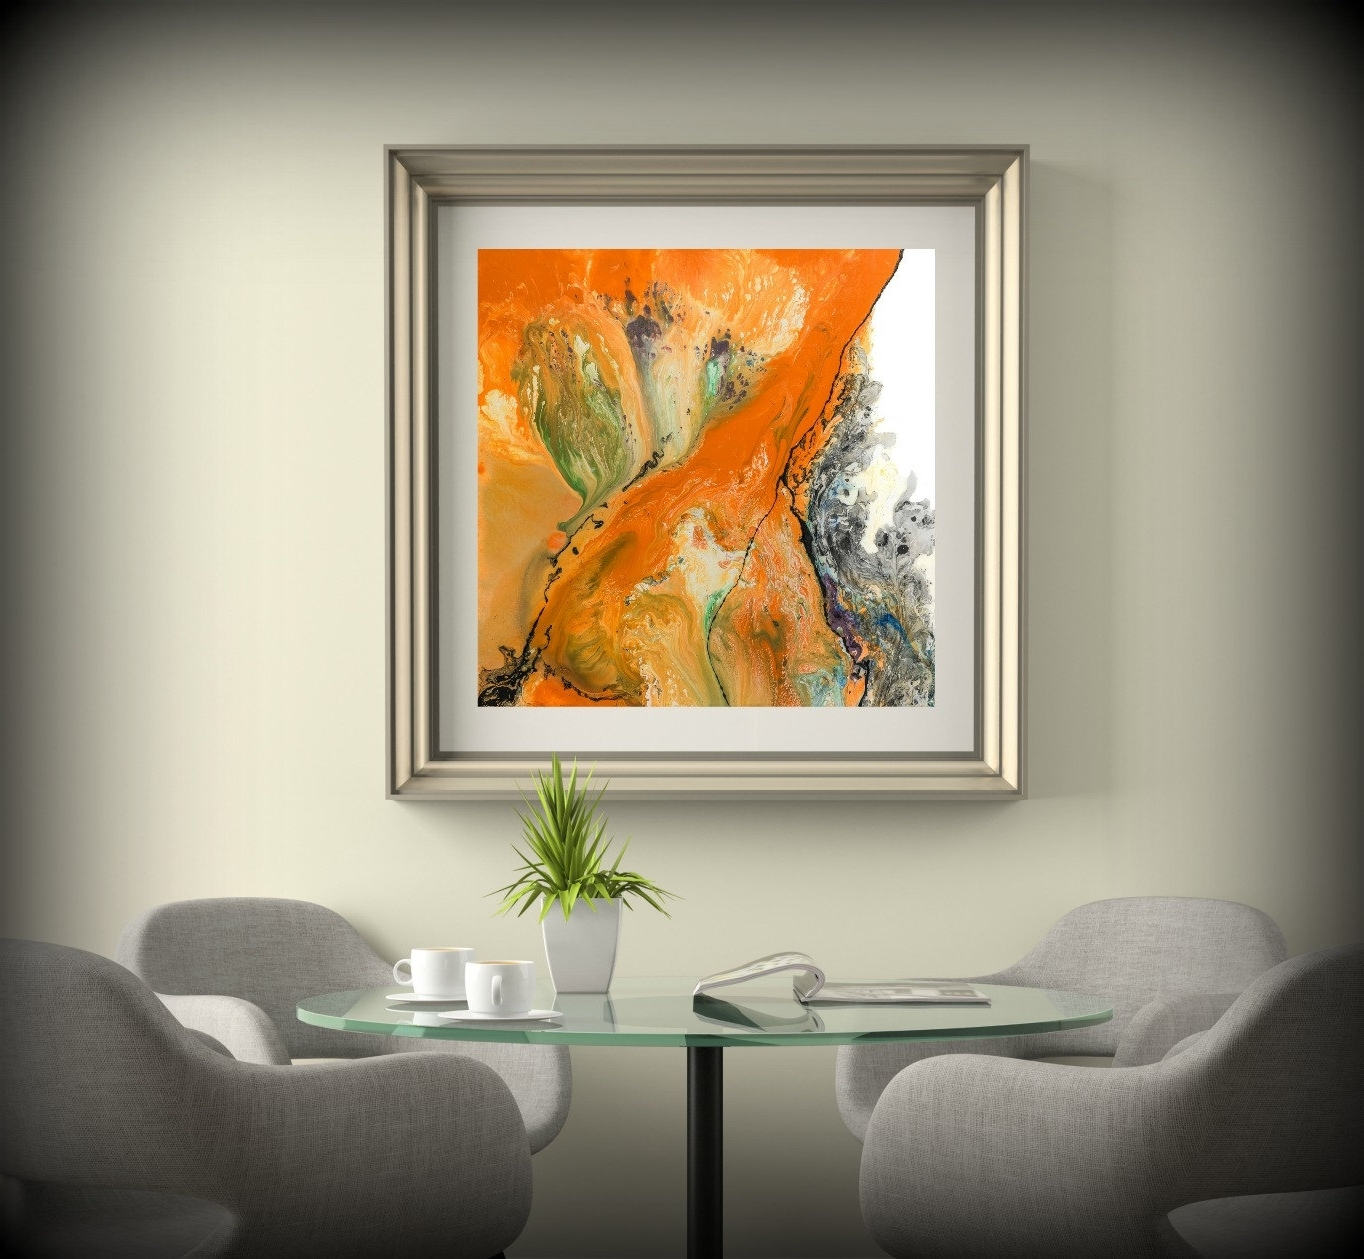 Art Décor: Top 15 Of Canvas Wall Art For Dining Room